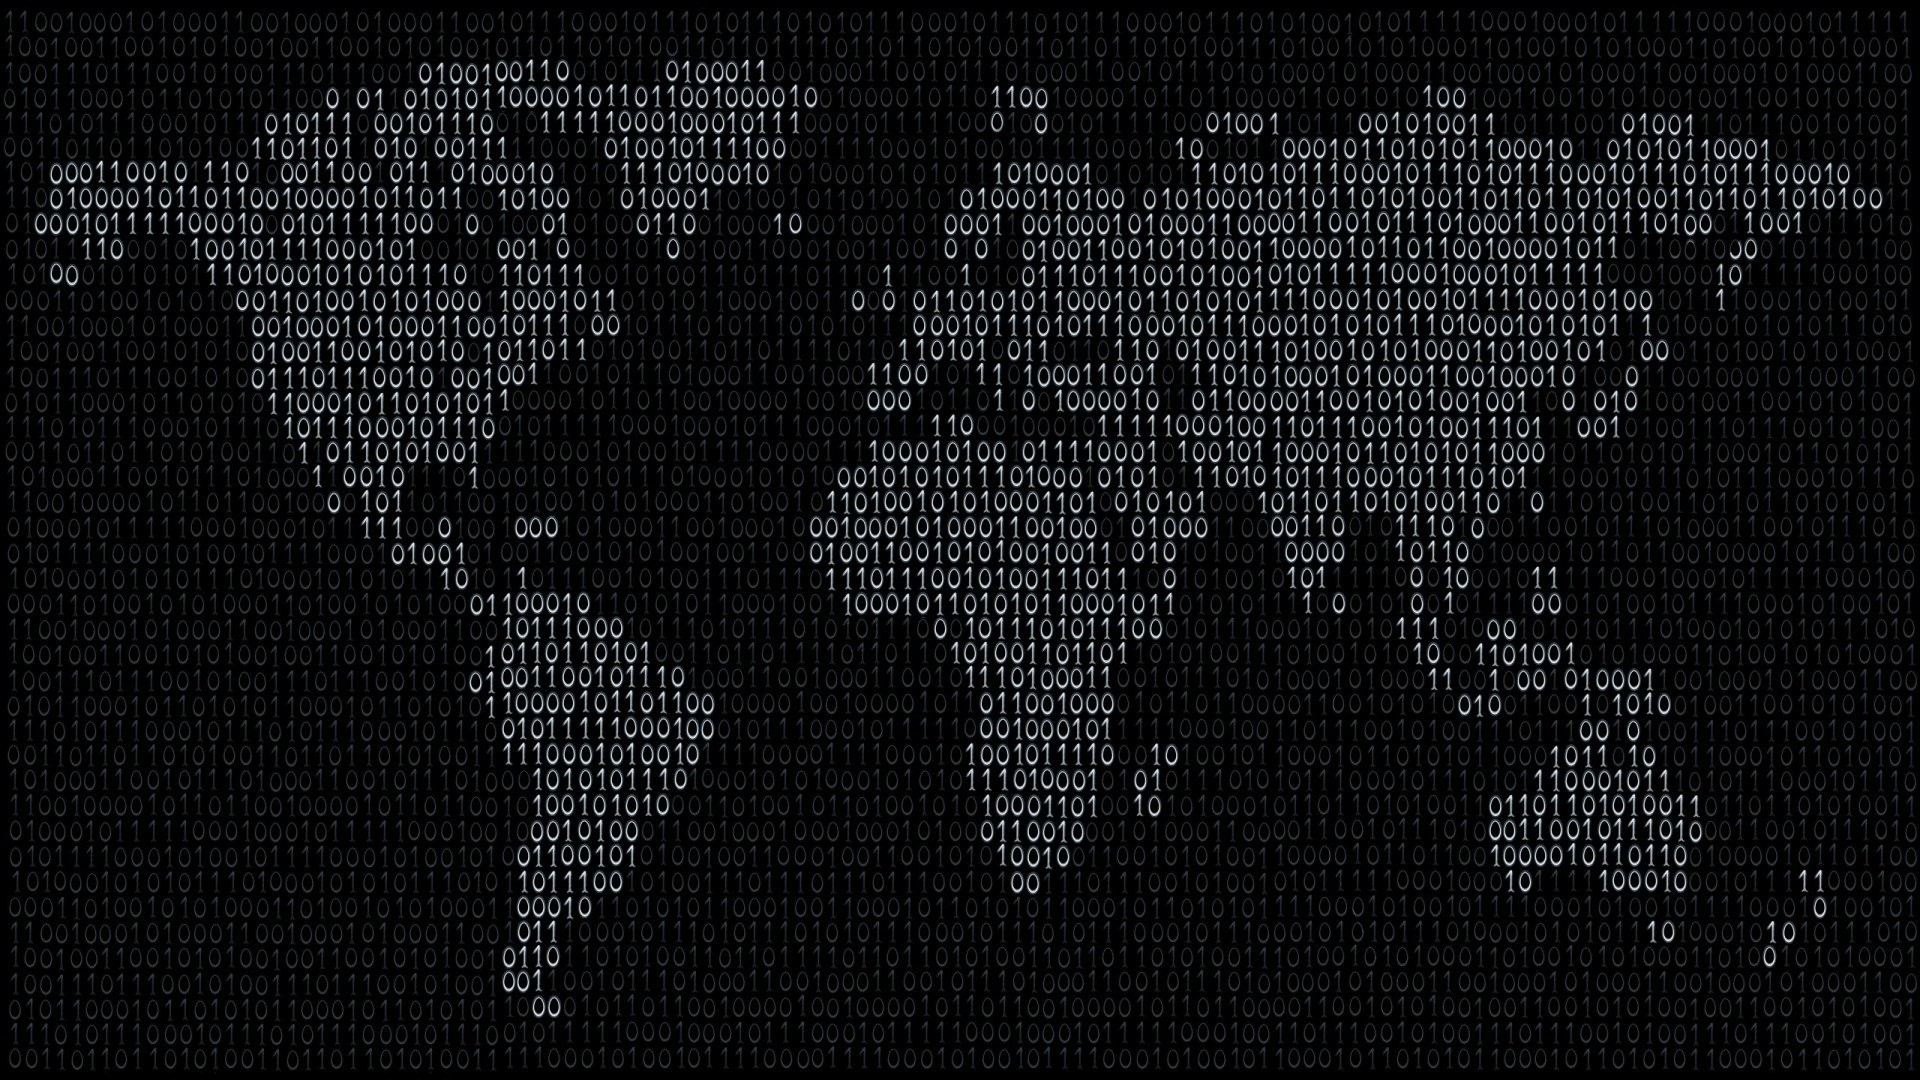 1920x1080 Download Free Binary Code Wallpaper.